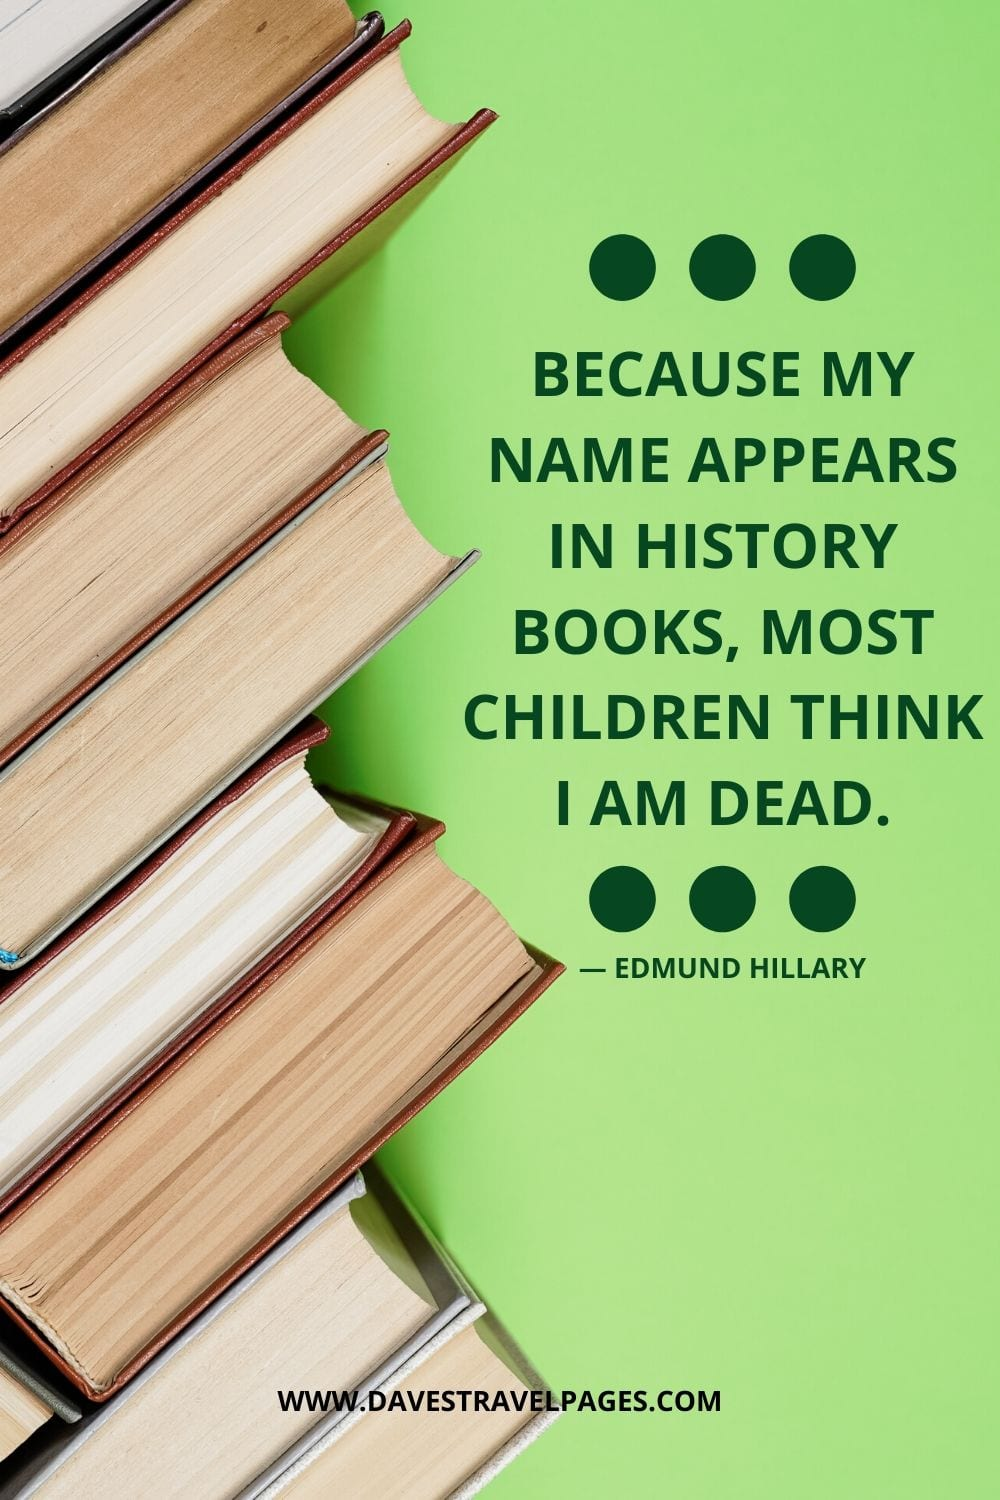 """Because my name appears in history books, most children think I am dead."" - Edmund Hillary"